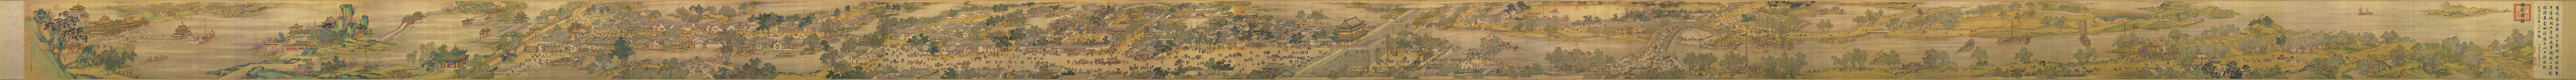 Panorama of Along the River During Ching Ming Festival, 18th century remake of a 12th century original by Chinese artist Zhang Zeduan